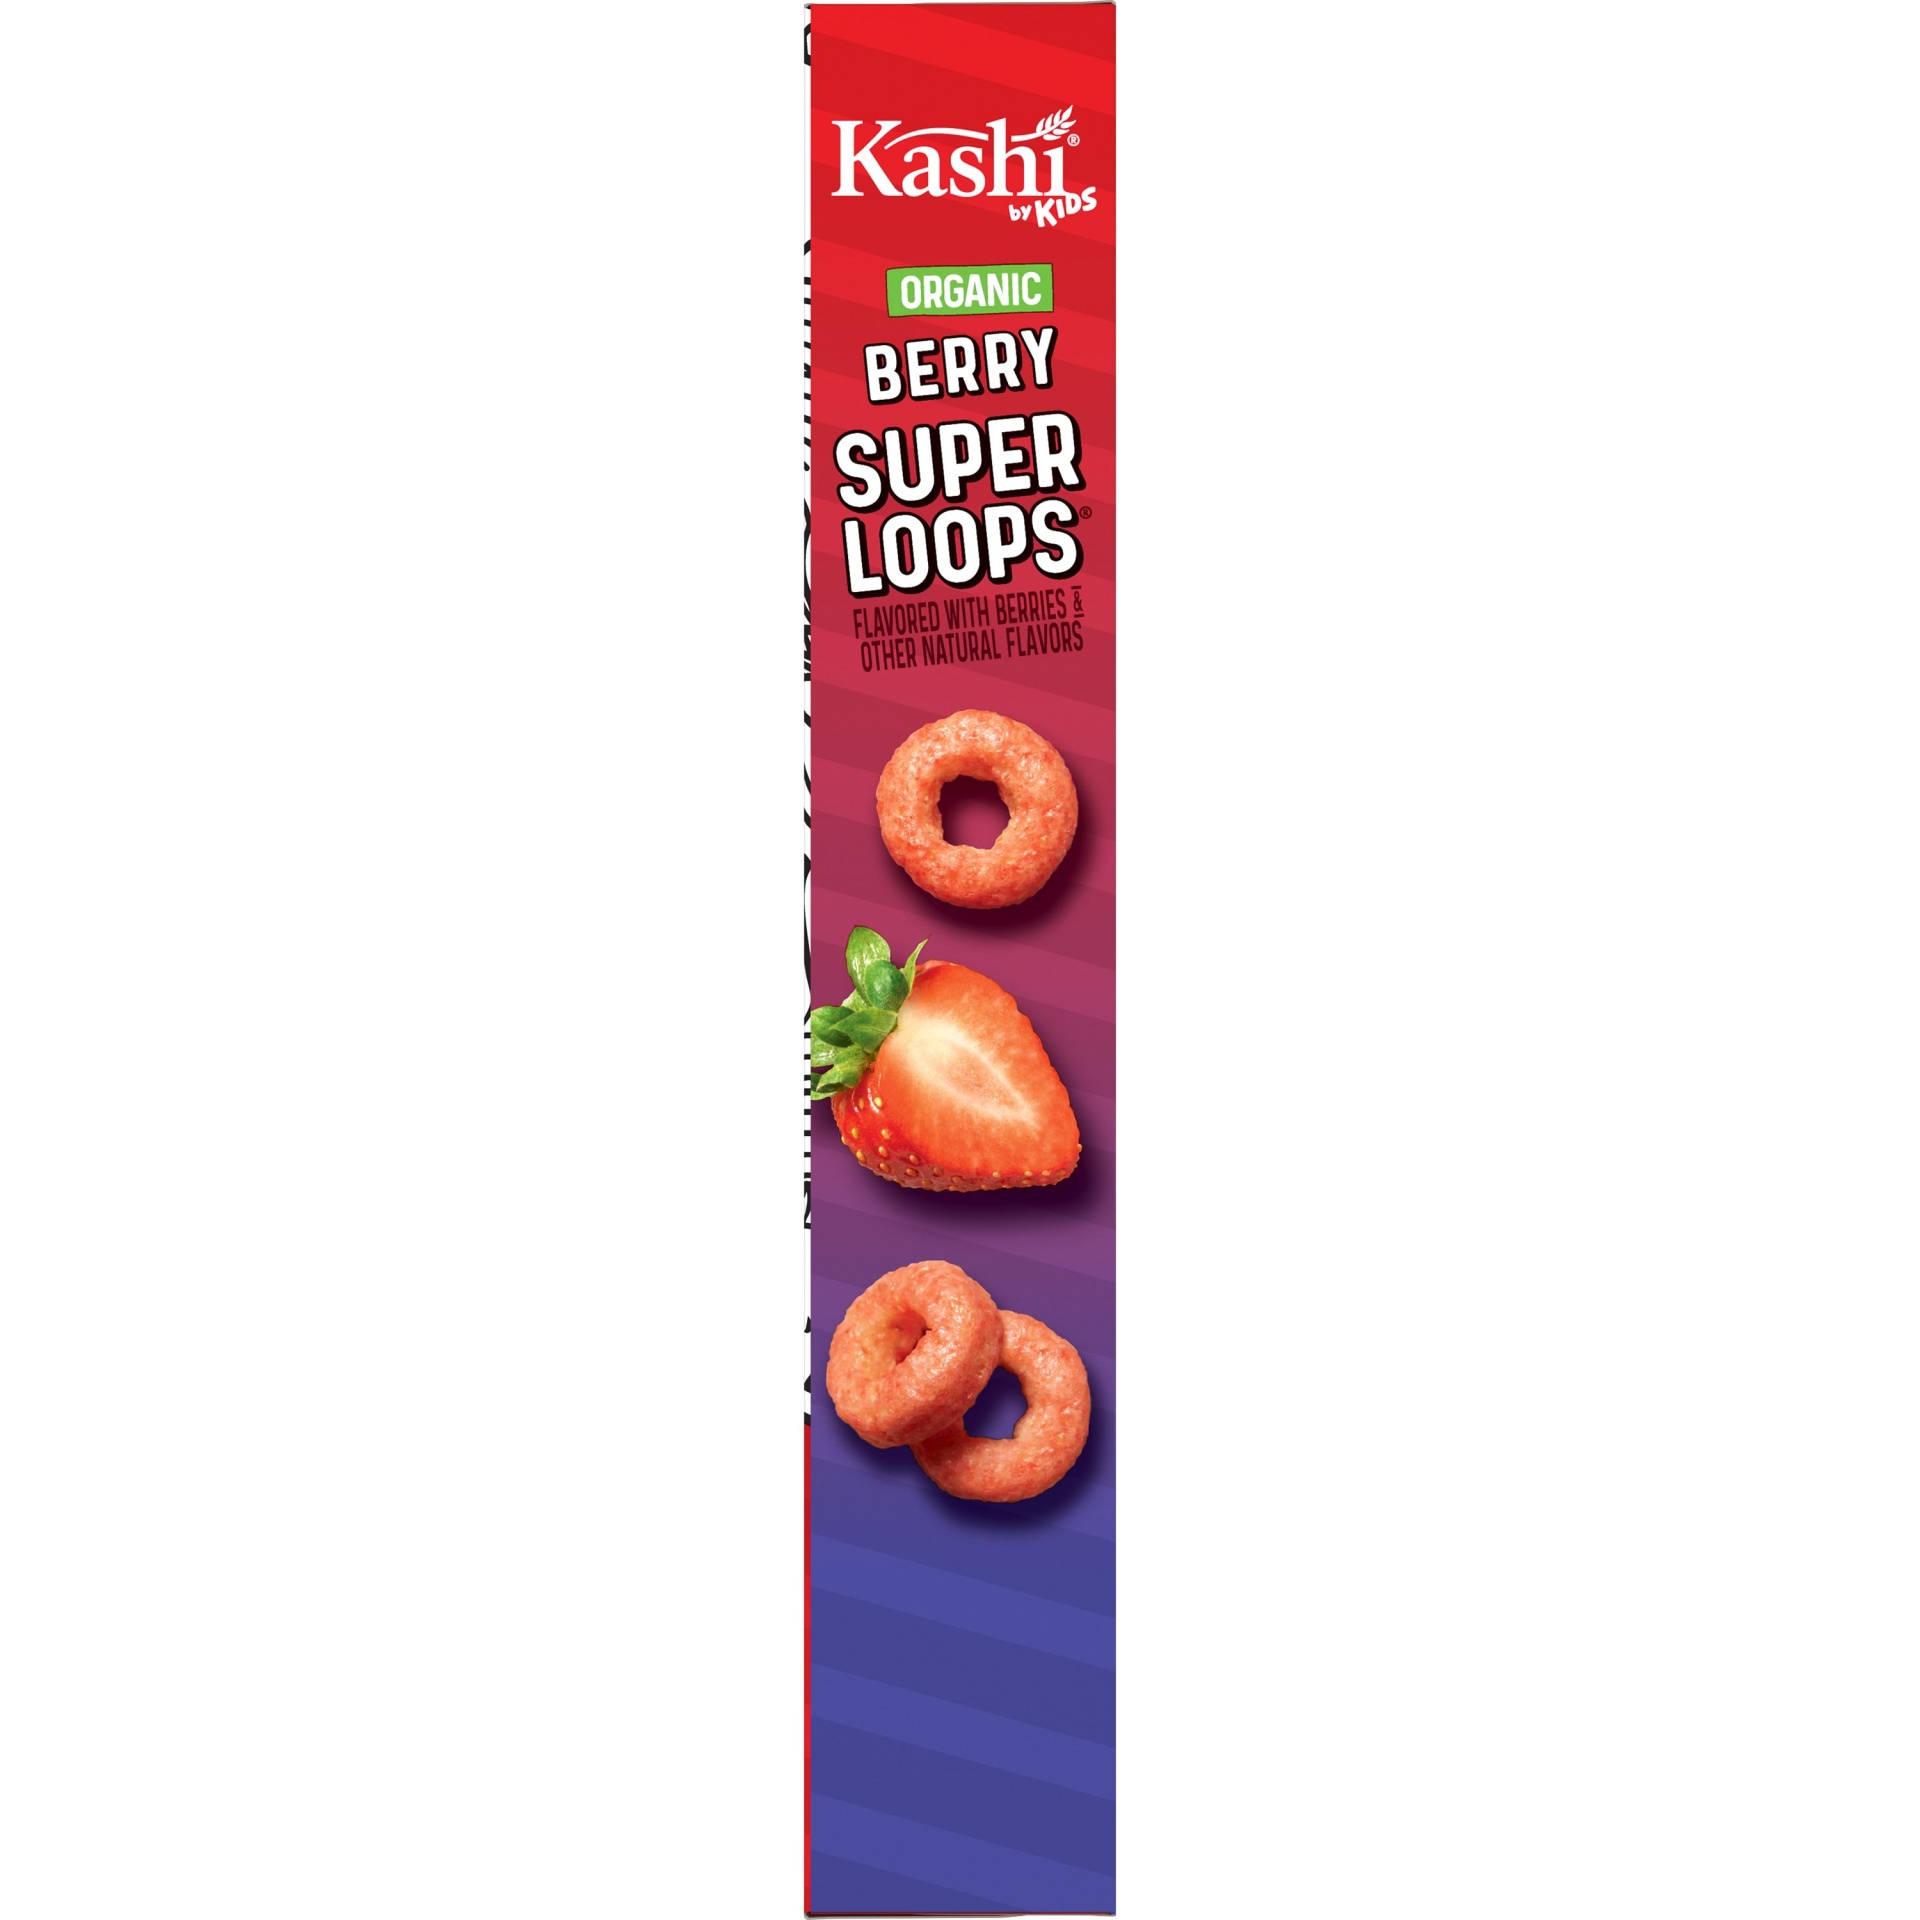 slide 4 of 7, Kashi By Kids Organic Berry Super Loops Cereal,